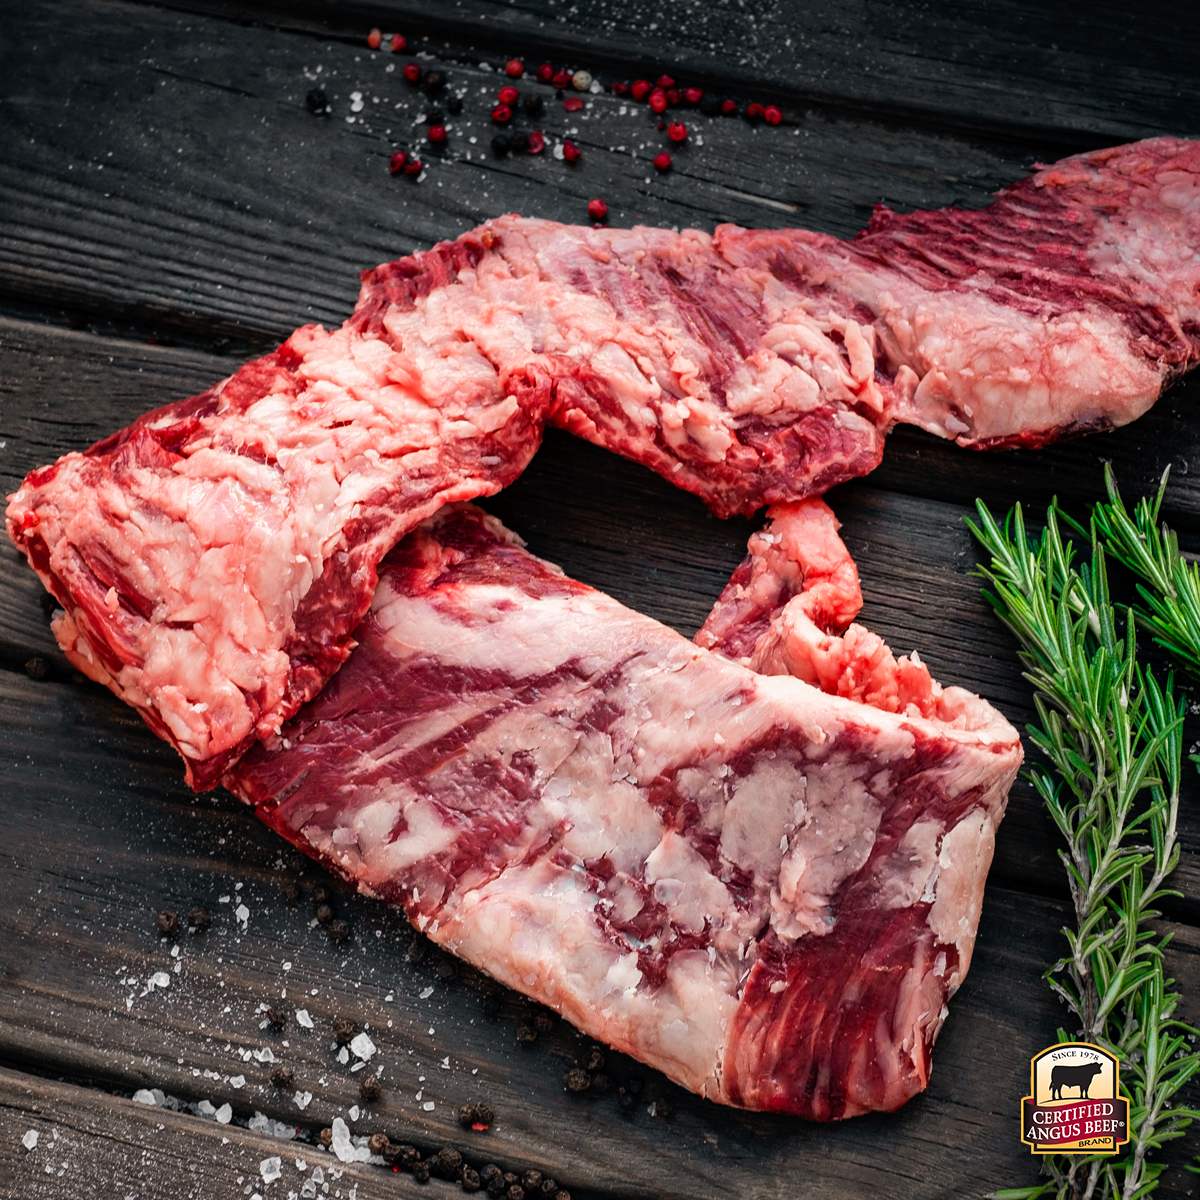 Churrasco Pelado Certified Angus Beef®